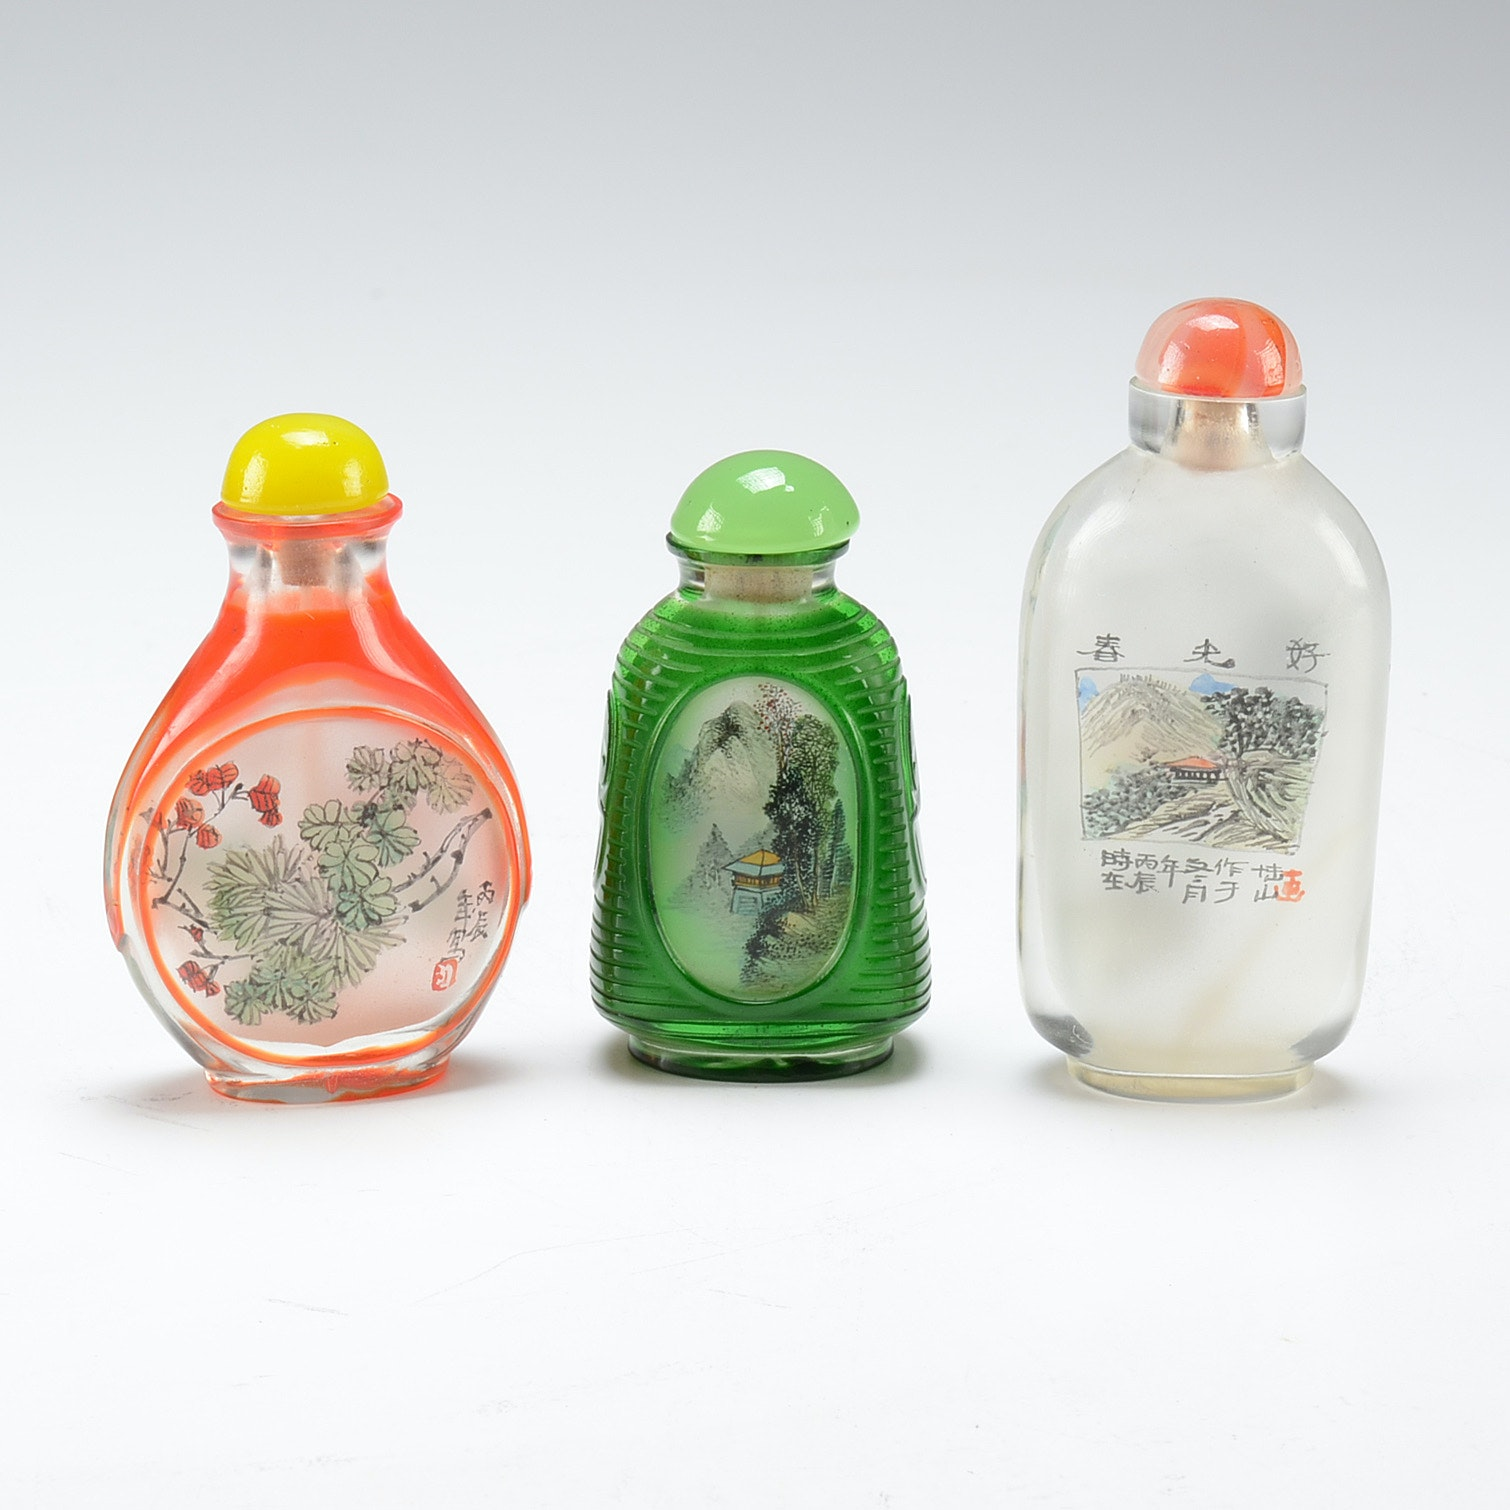 Vintage Chinese Reverse Painted Glass Snuff Bottles